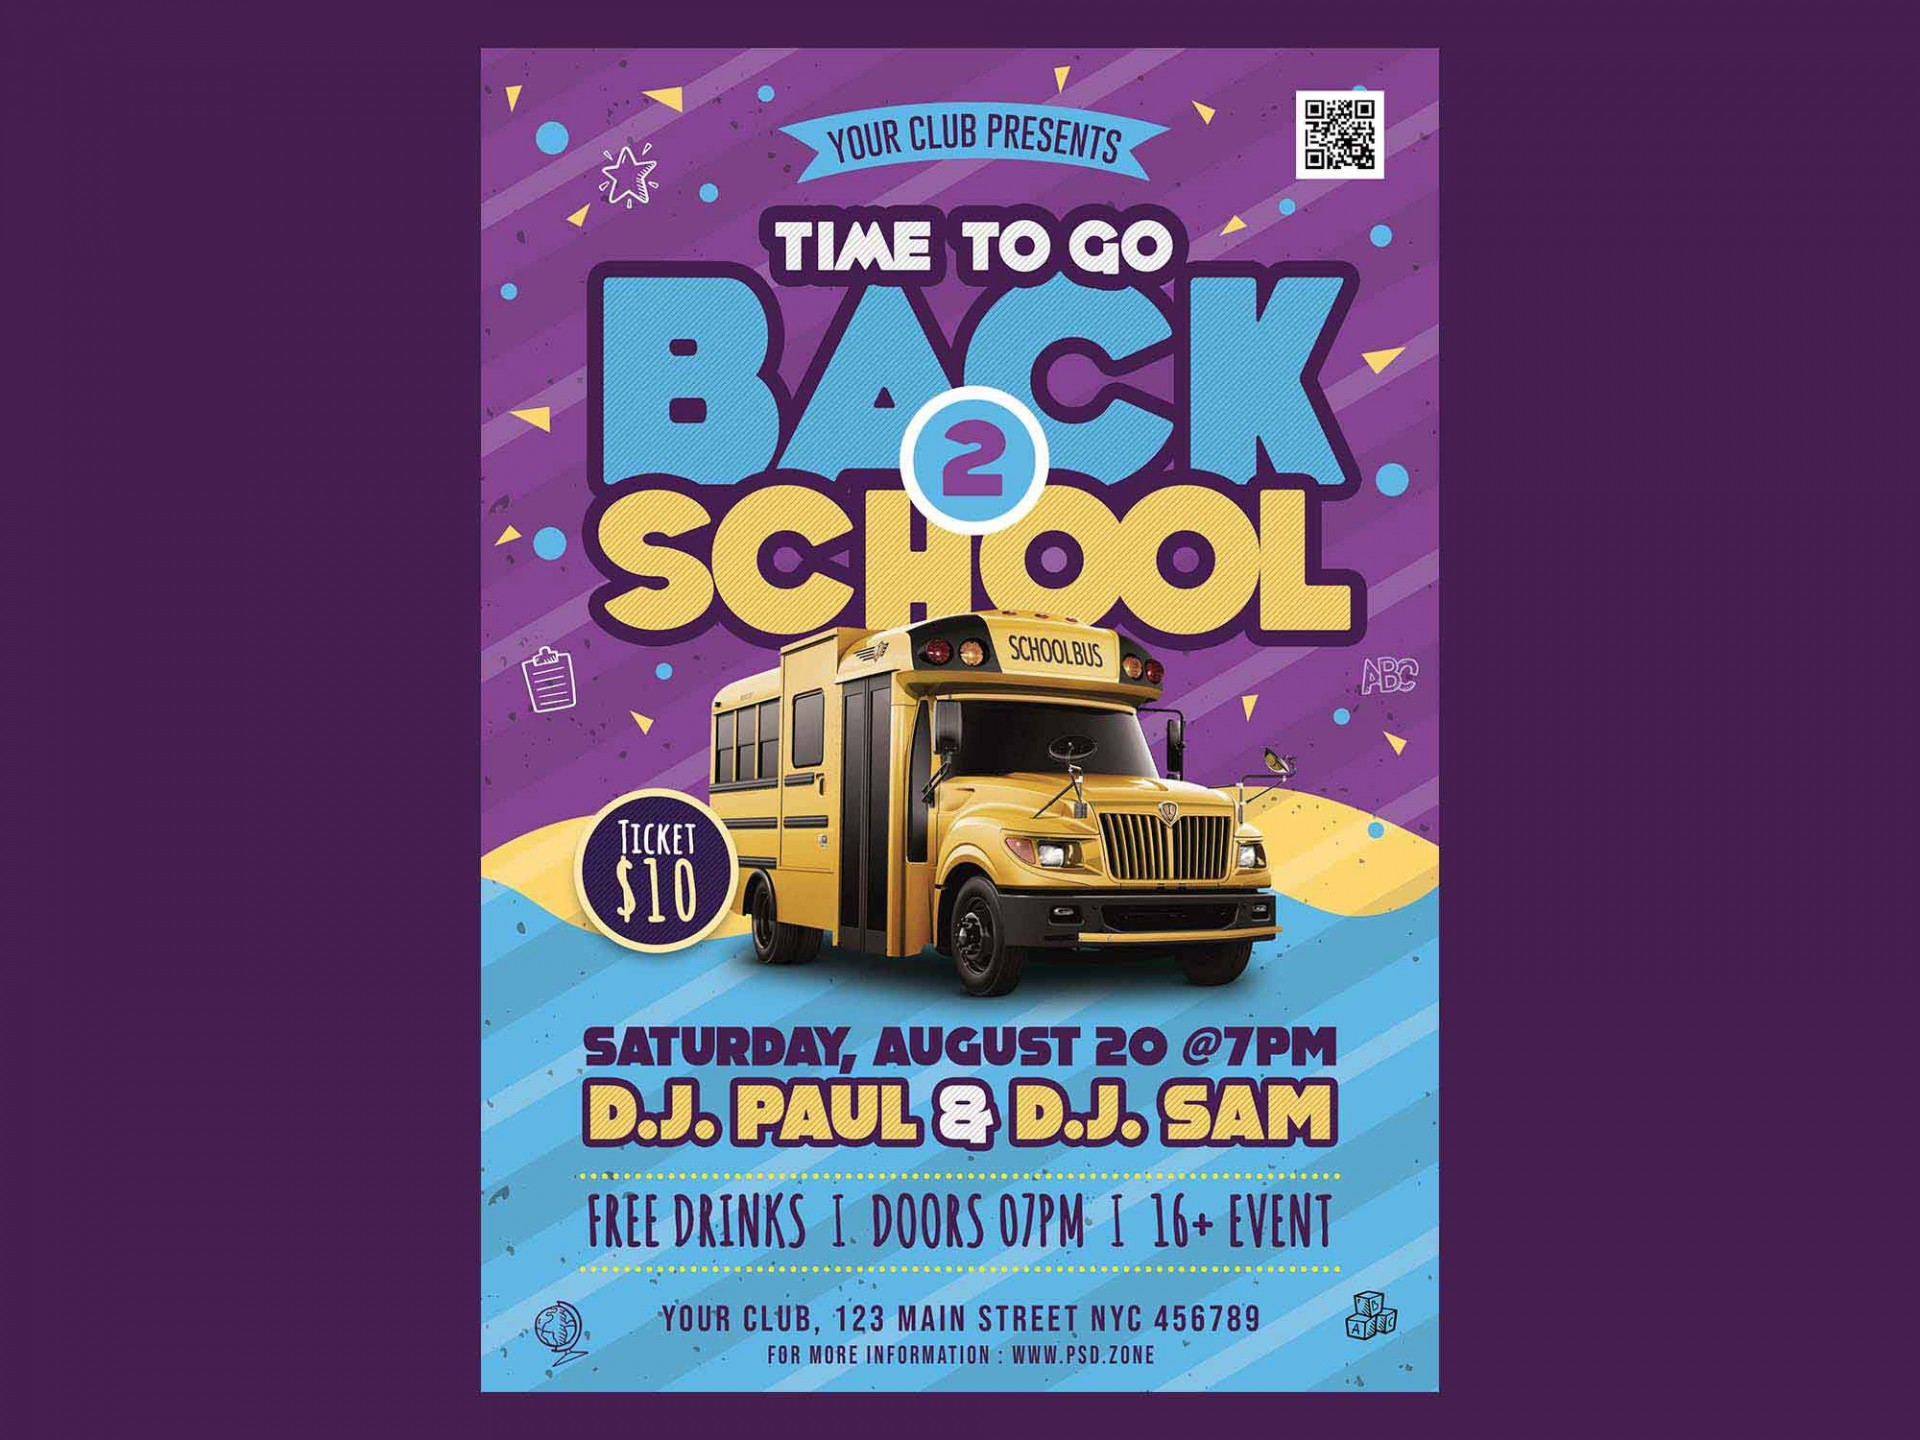 005 Phenomenal Free Back To School Flyer Template Psd Inspiration 1920